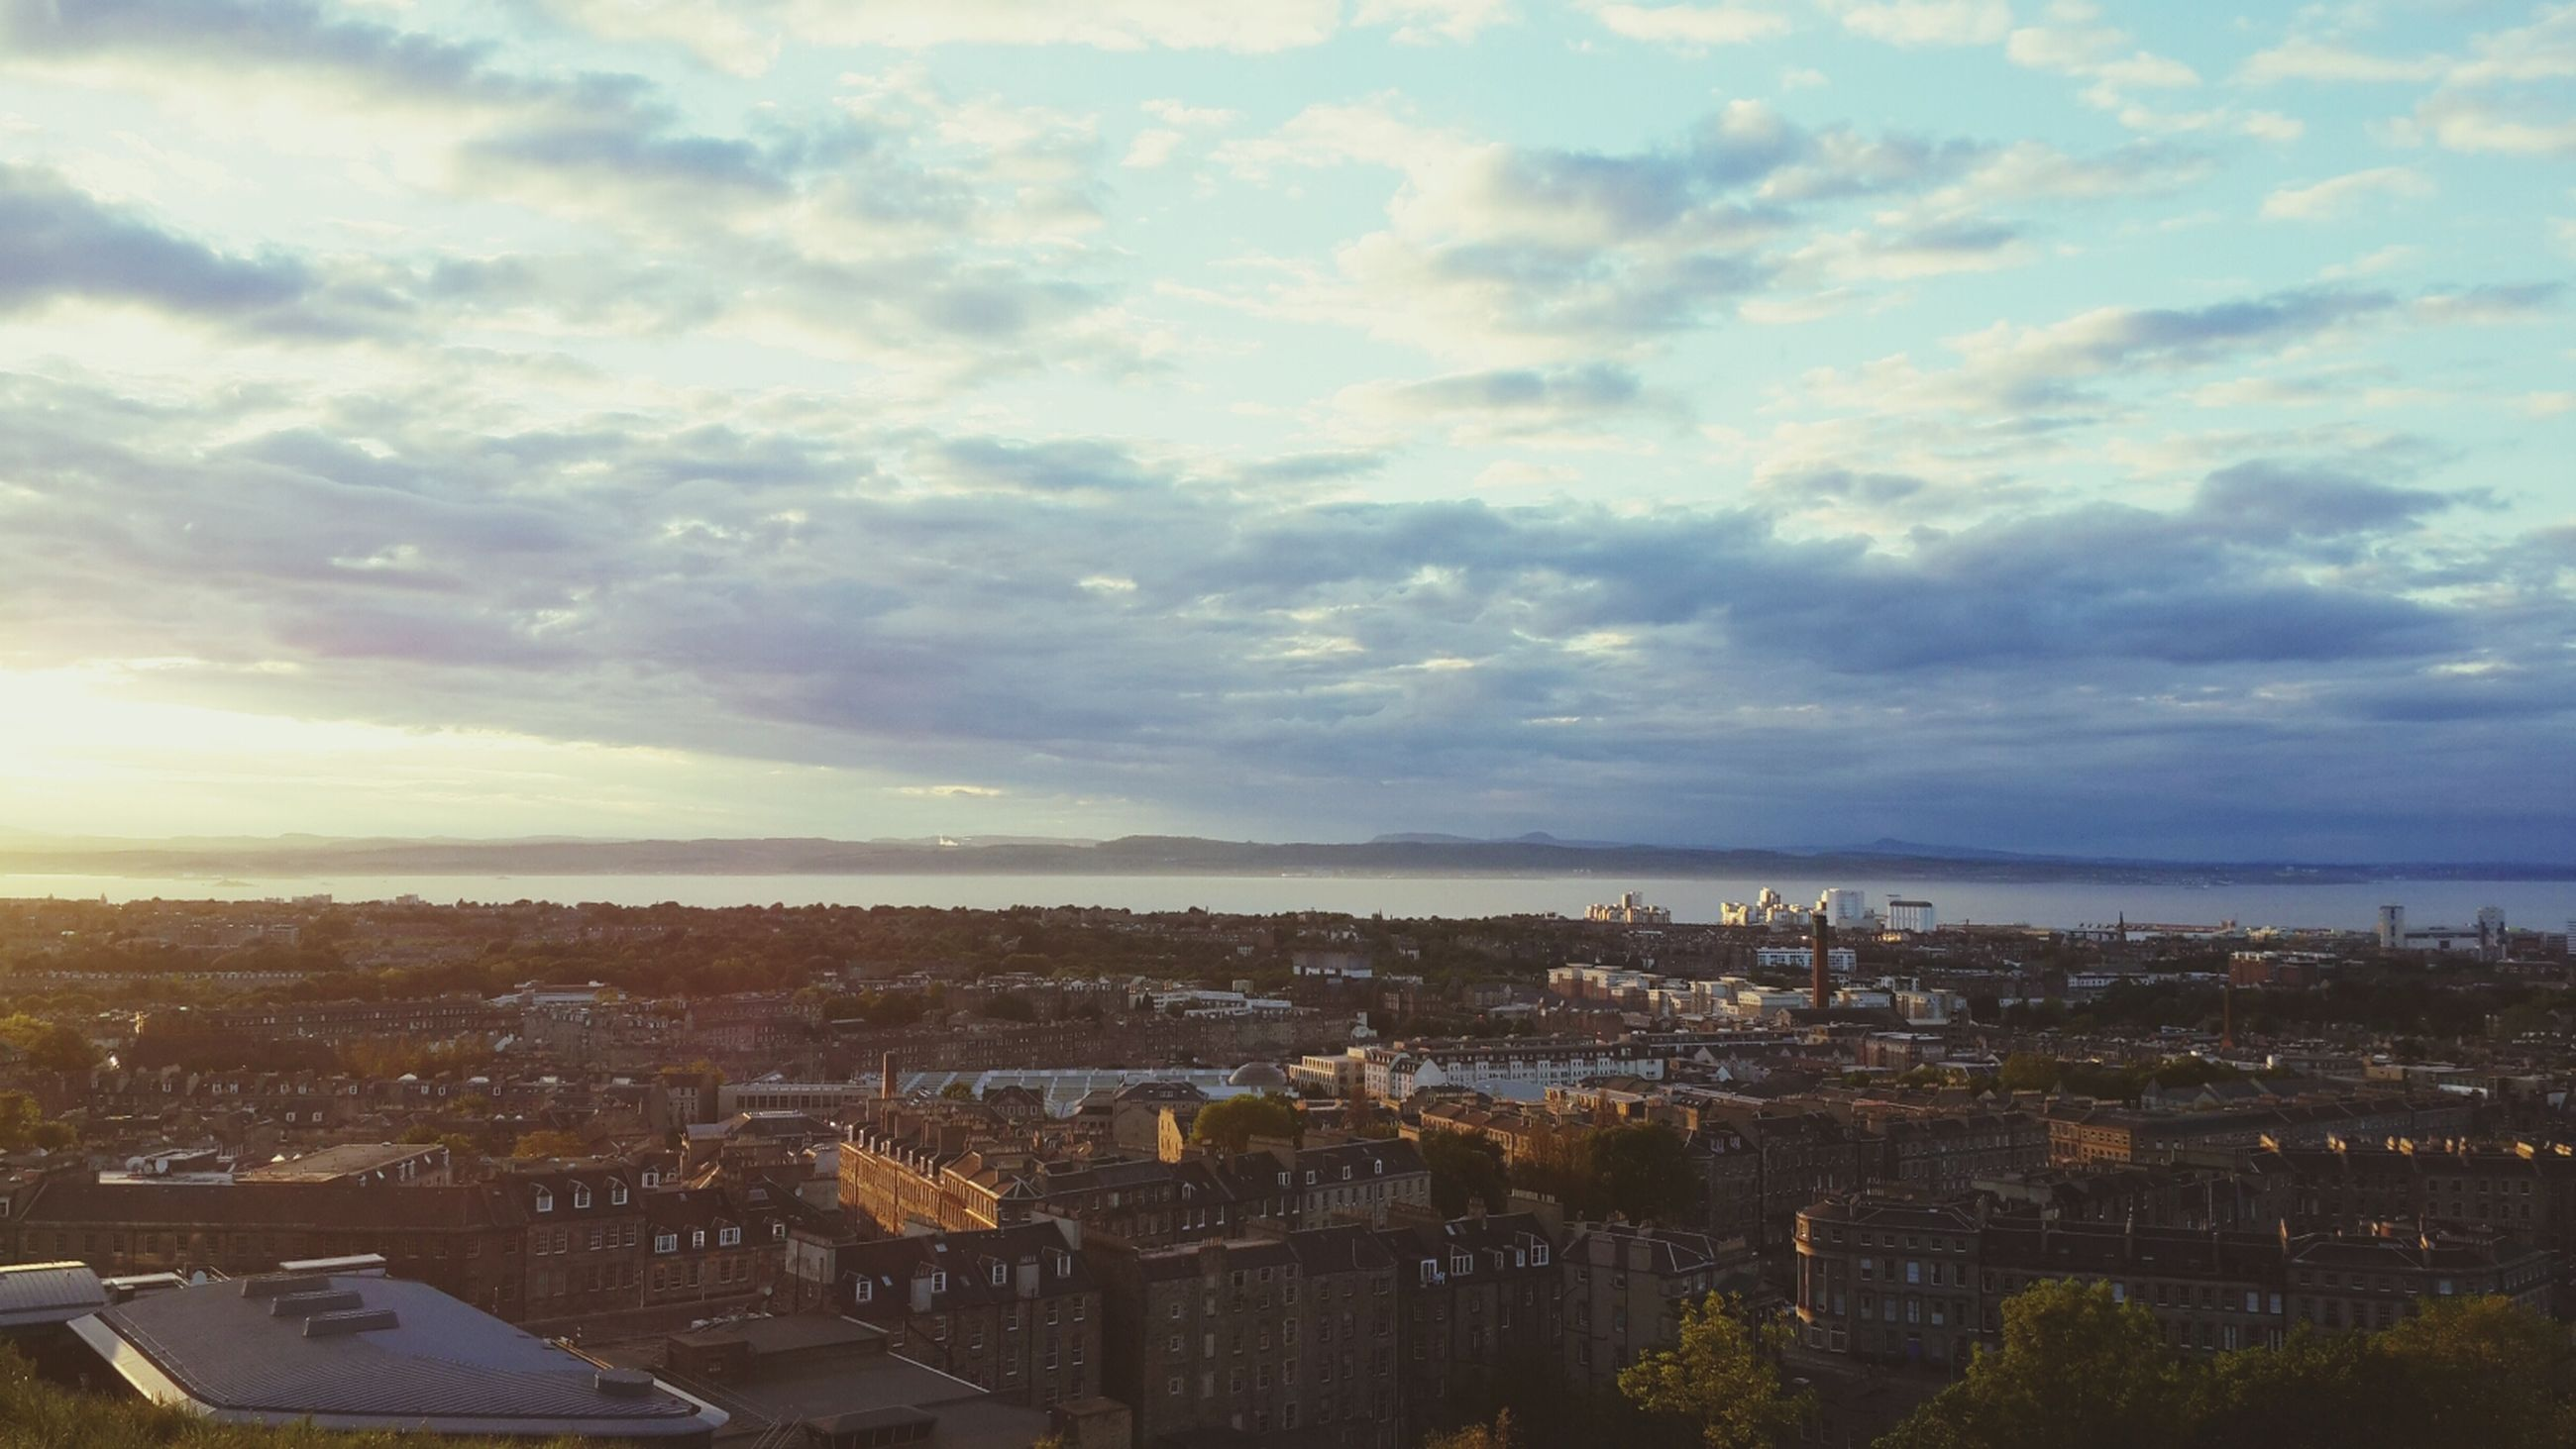 building exterior, architecture, built structure, cityscape, sky, city, cloud - sky, high angle view, crowded, residential district, residential building, sea, residential structure, cloudy, water, cloud, horizon over water, town, aerial view, house